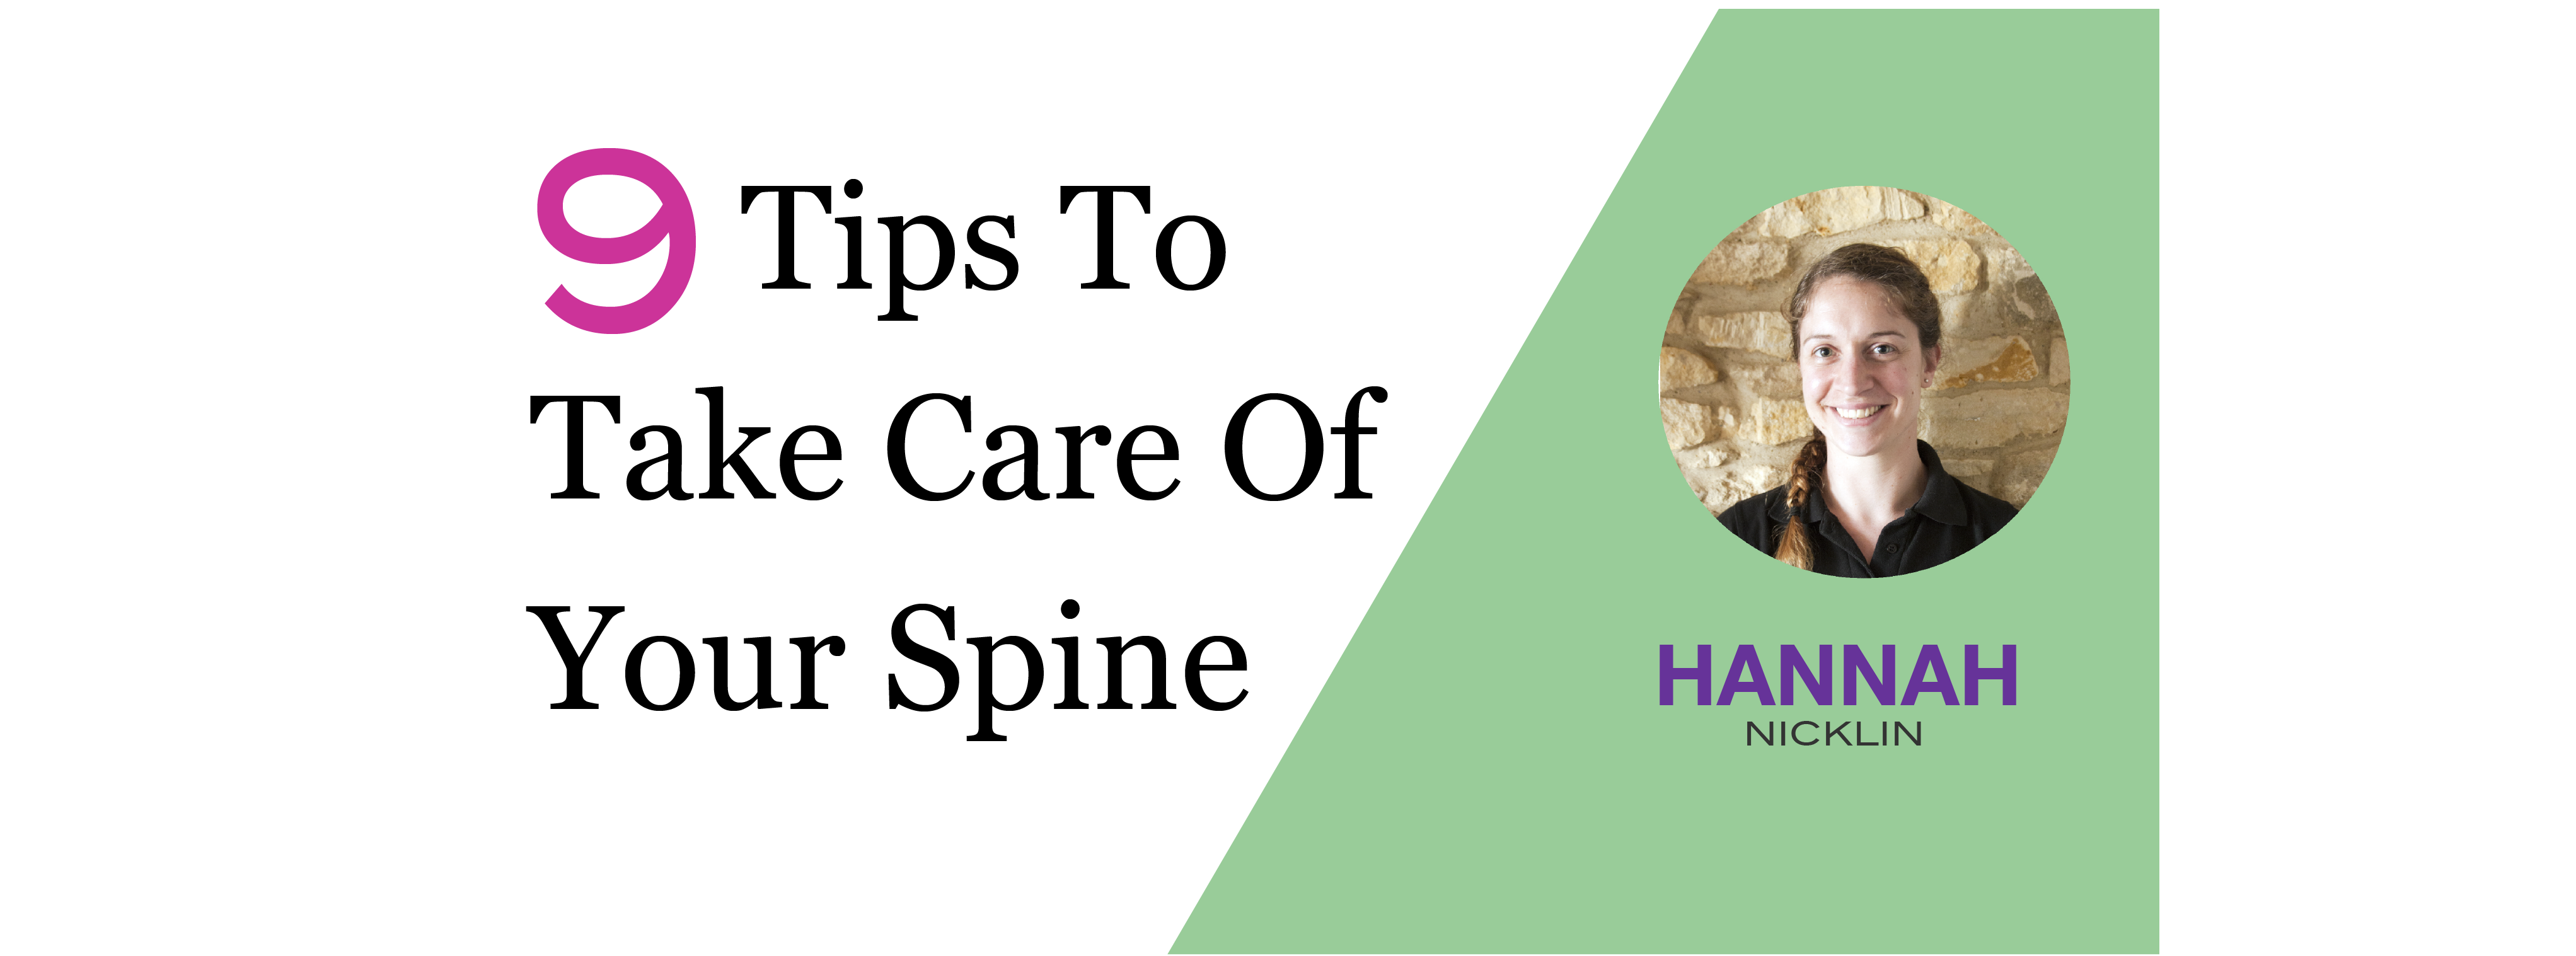 Back Pain - 9 Tips To Take Of Your Spine